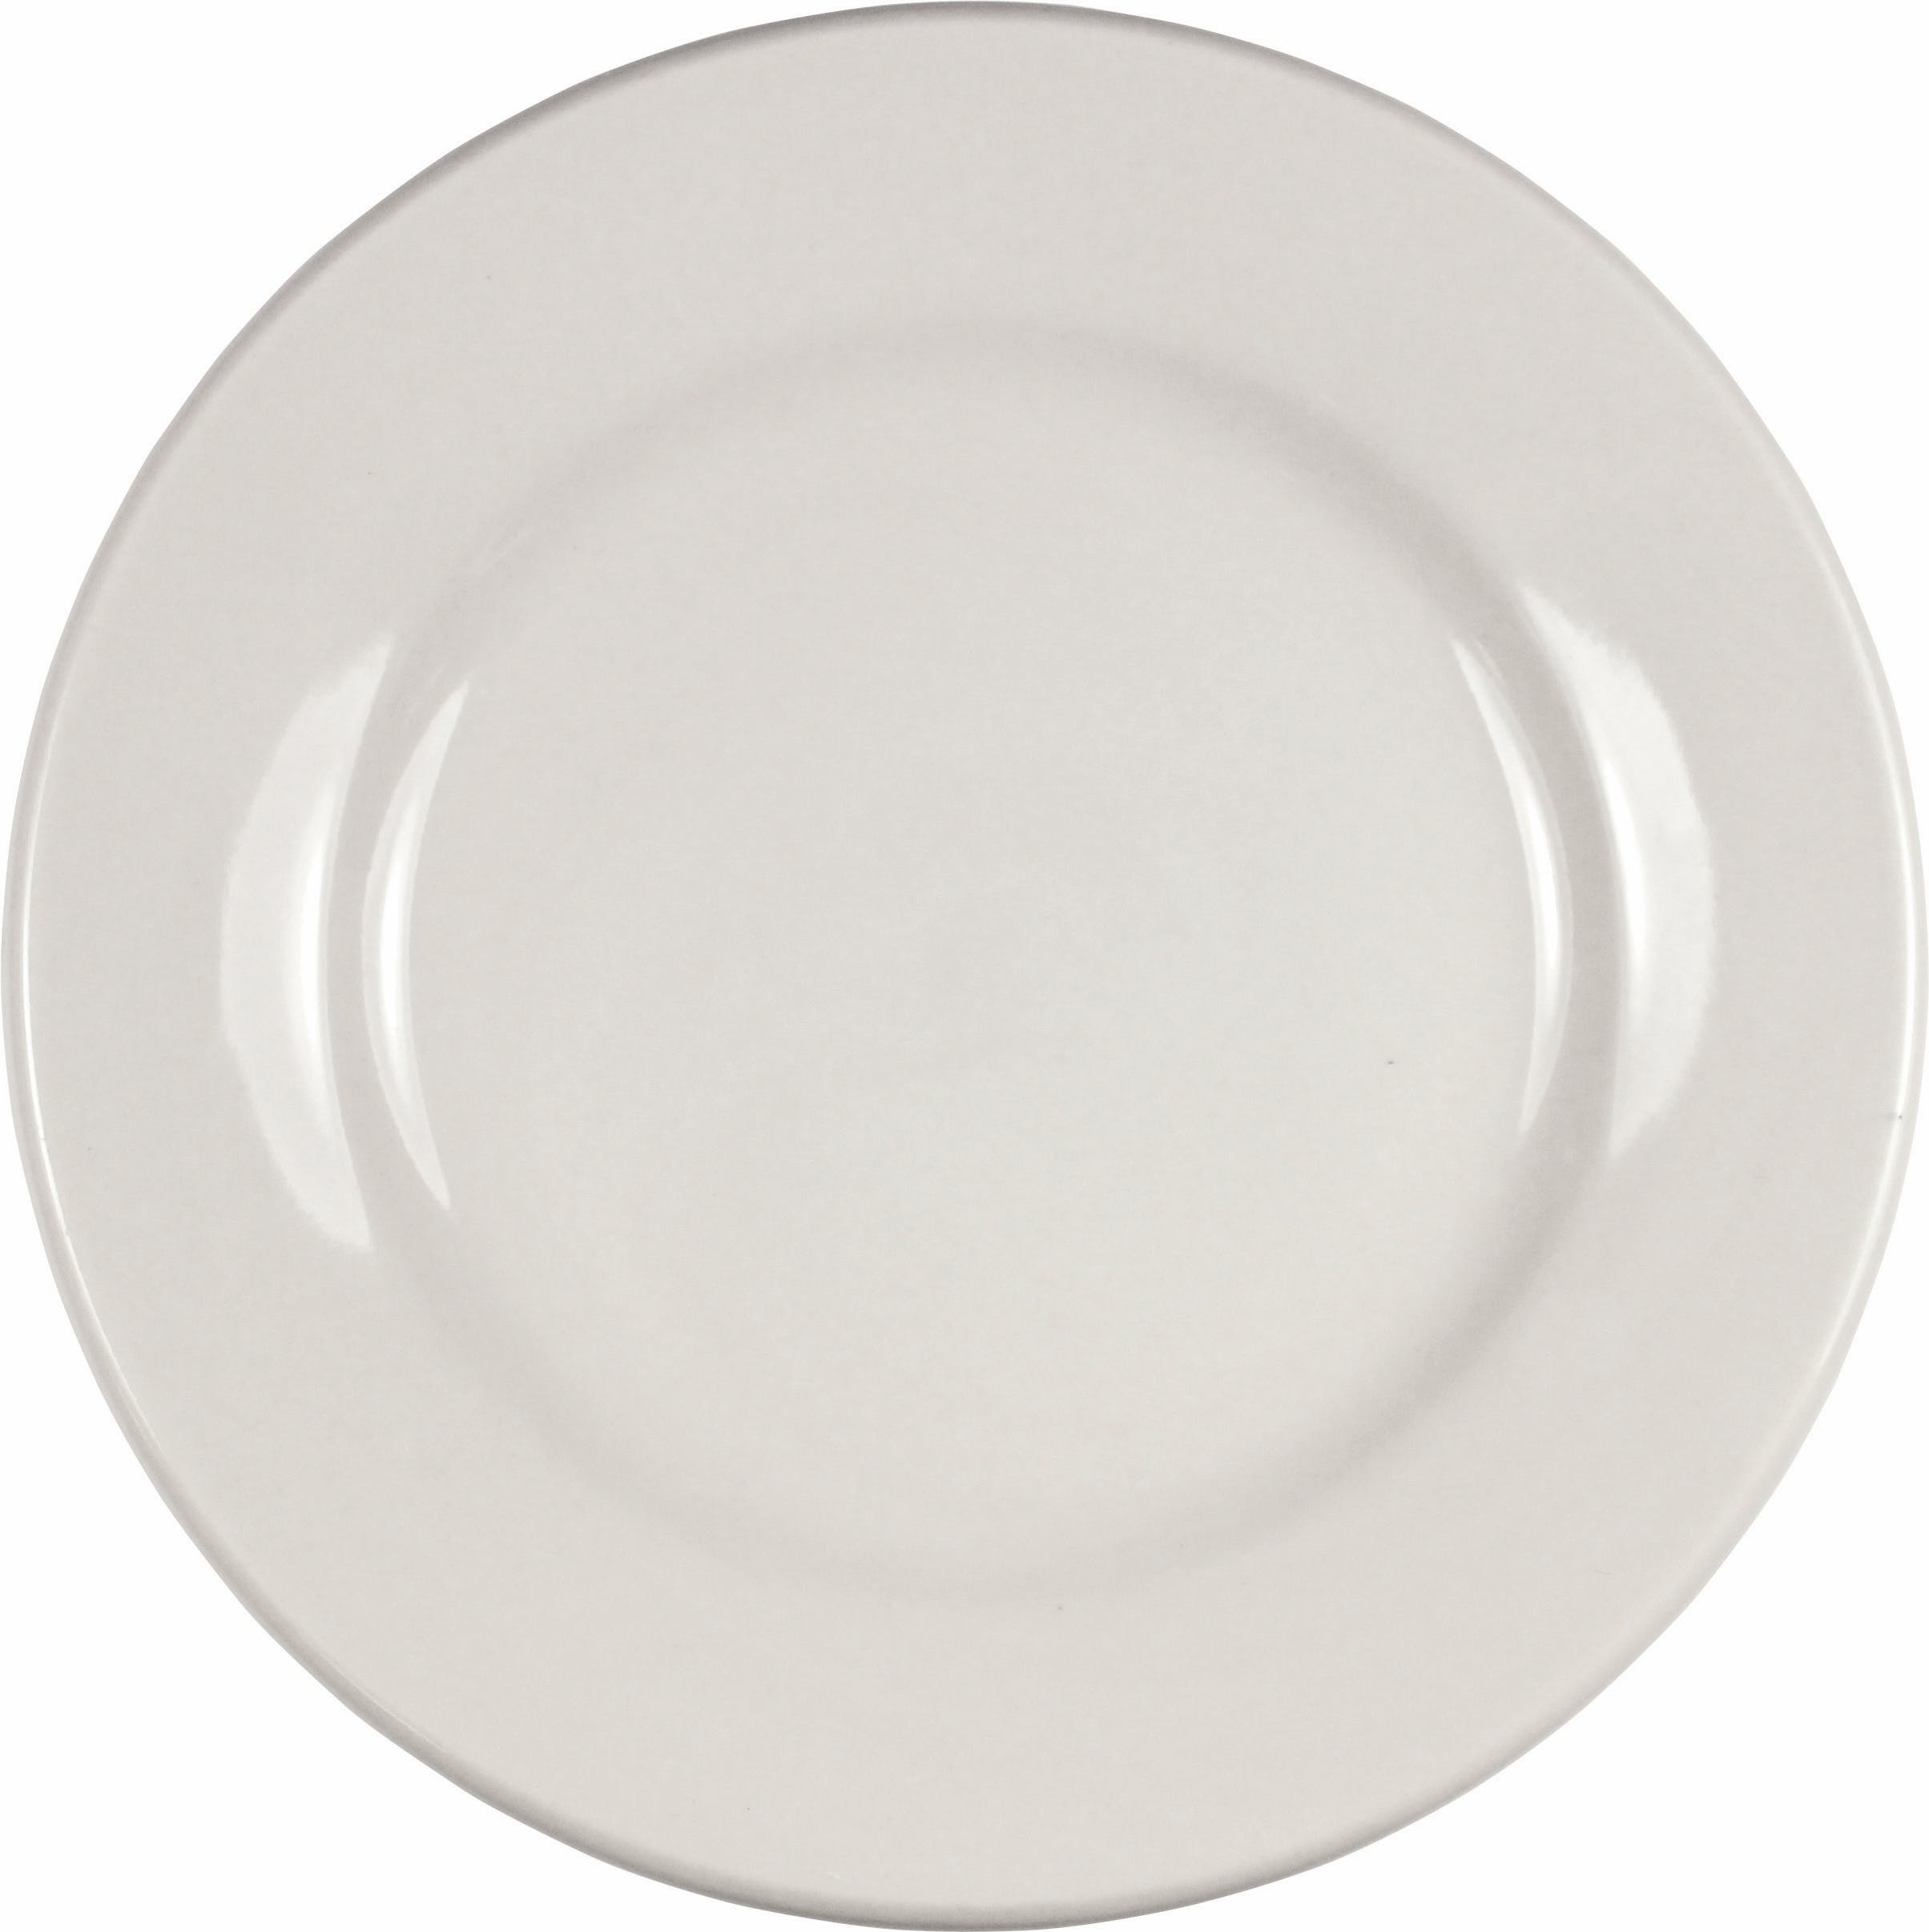 "9"" American White Roma Dinner Plate Plate sold by Prestige Glassware"